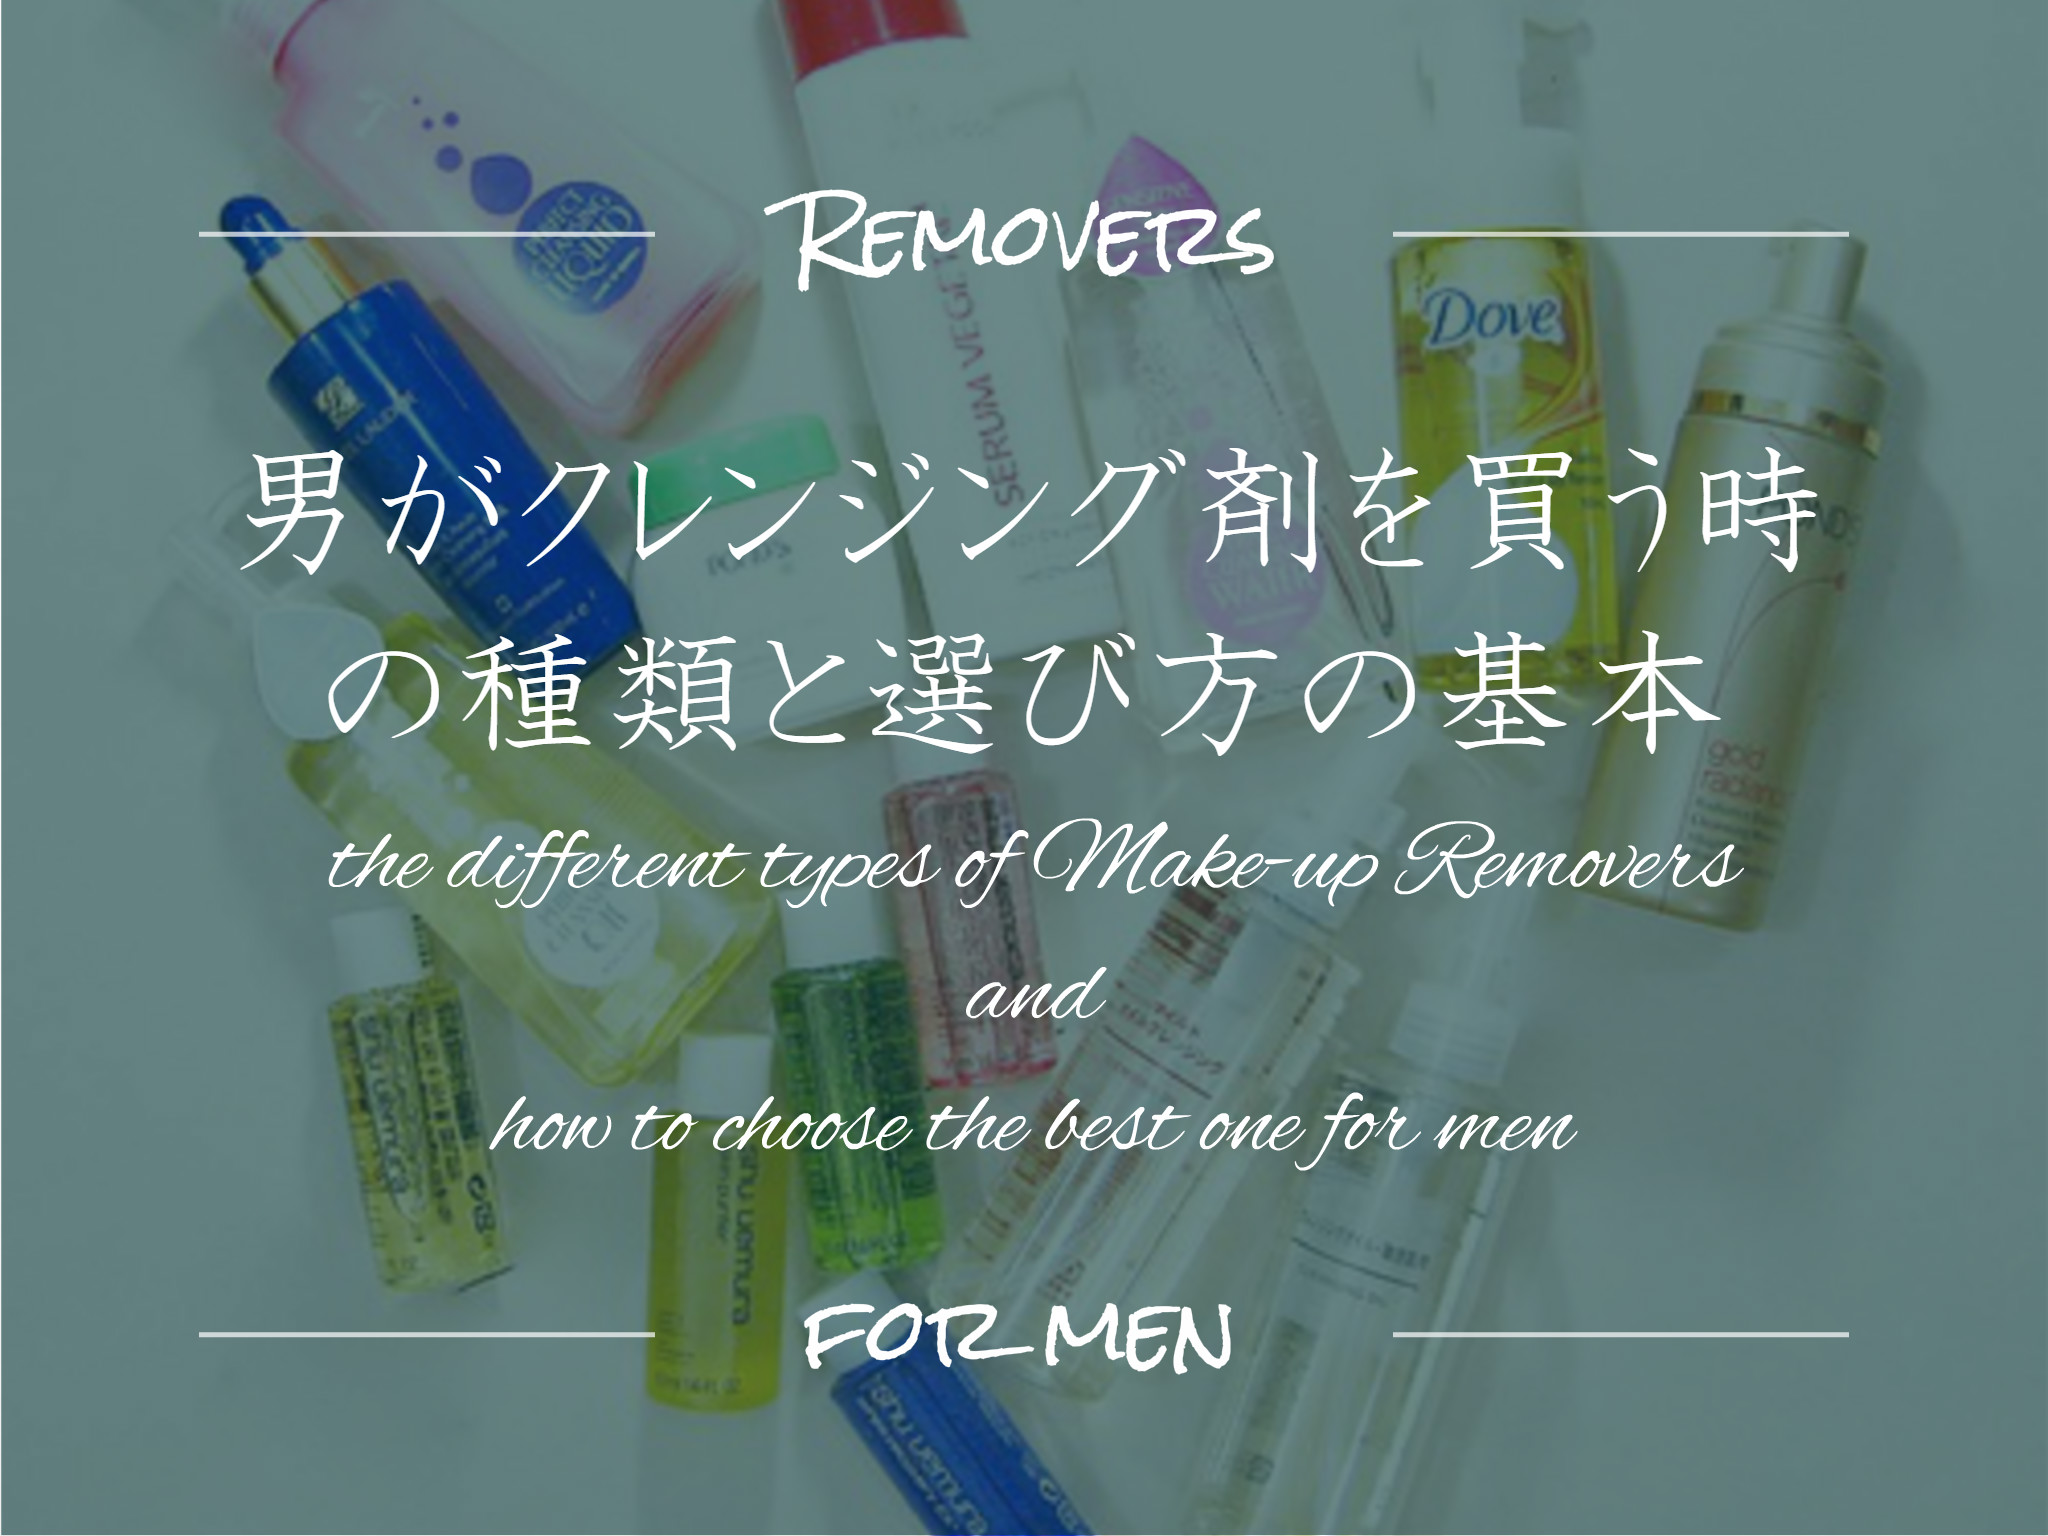 the different types of Make-up Removers and how to choose the best one for men 男がクレンジング剤を買う時の種類と選び方の基本